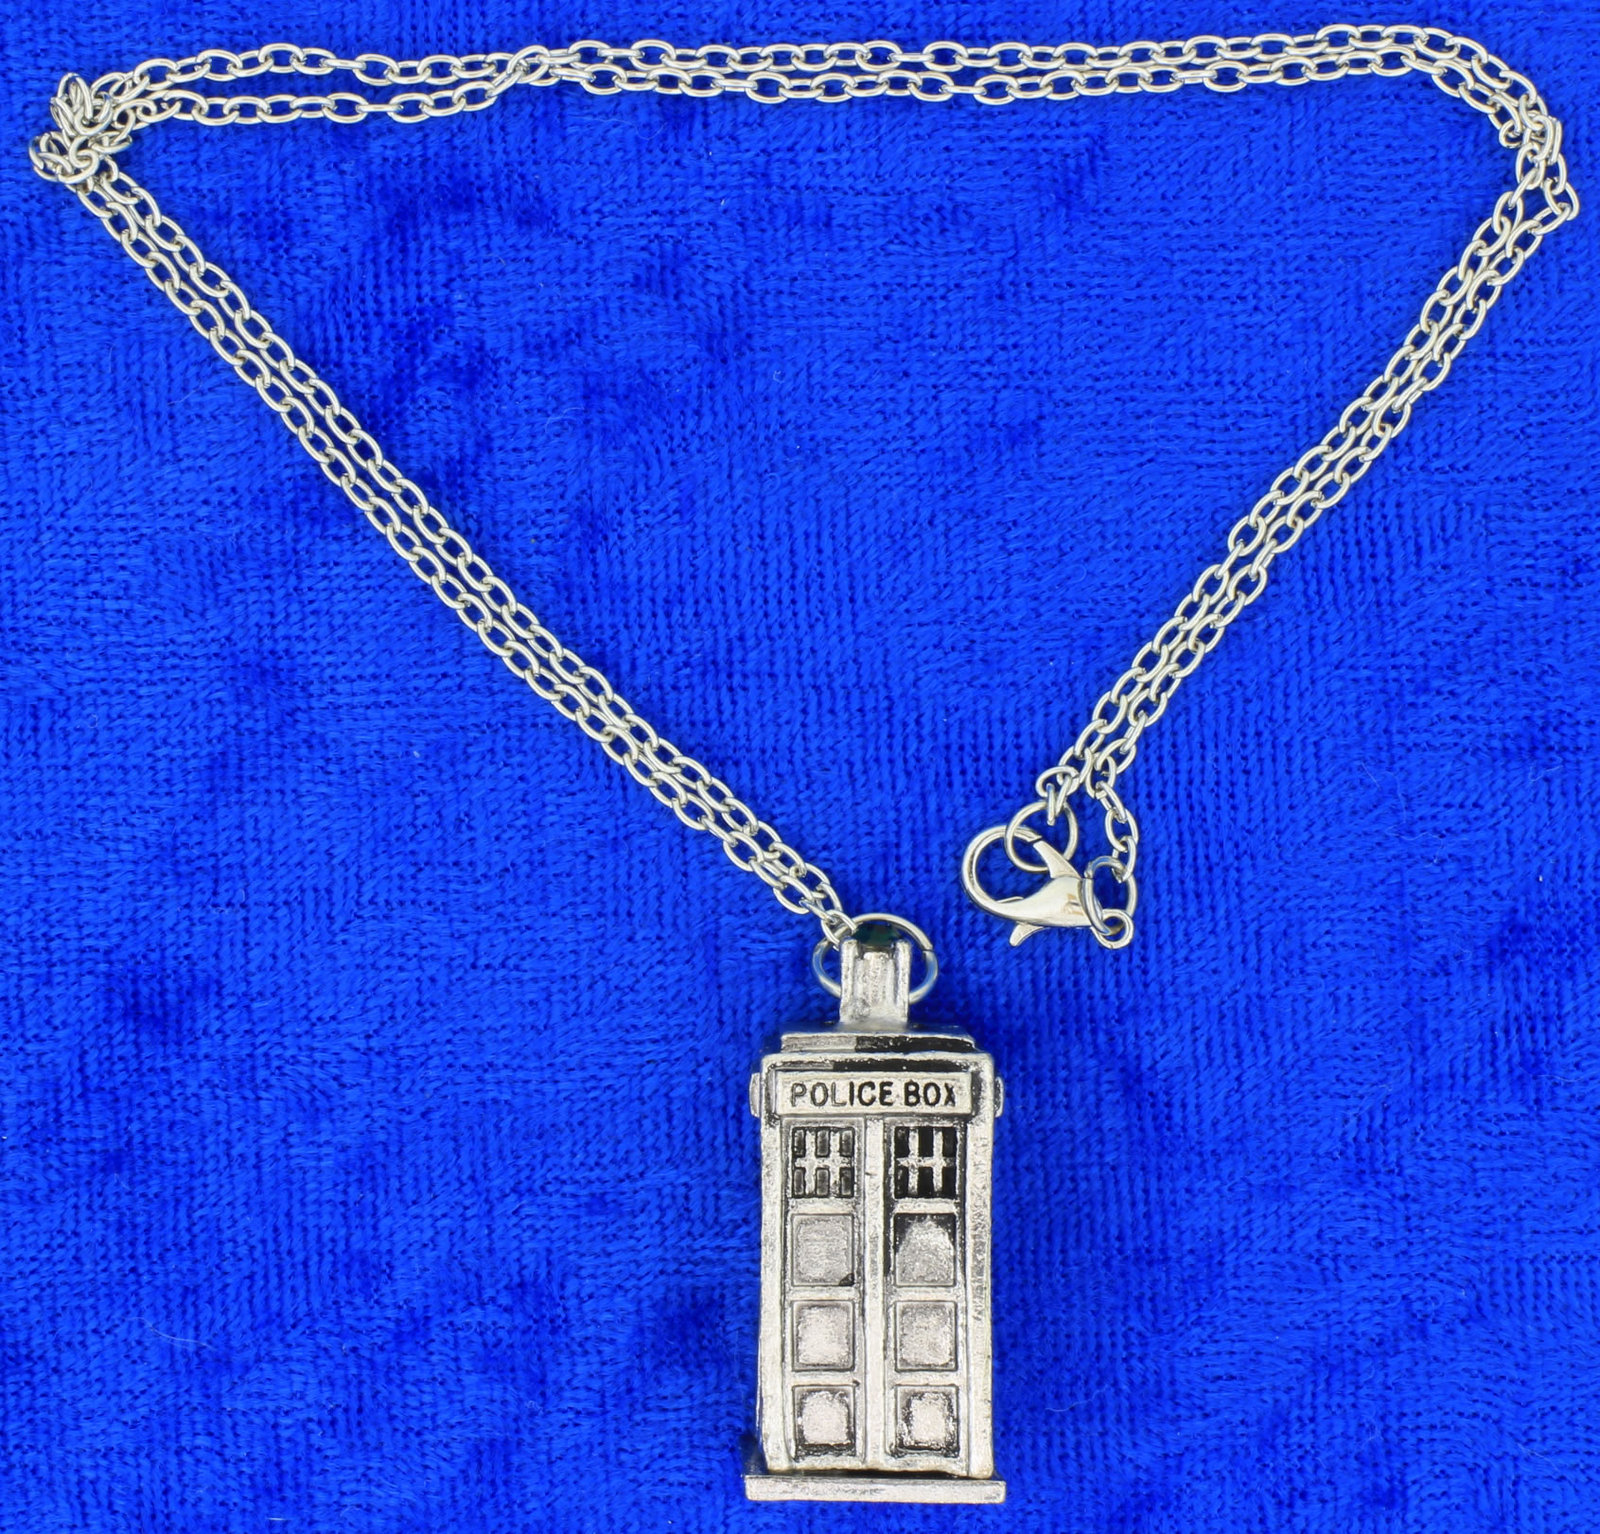 Tardis polic box  doctor who  silver  necklace  side